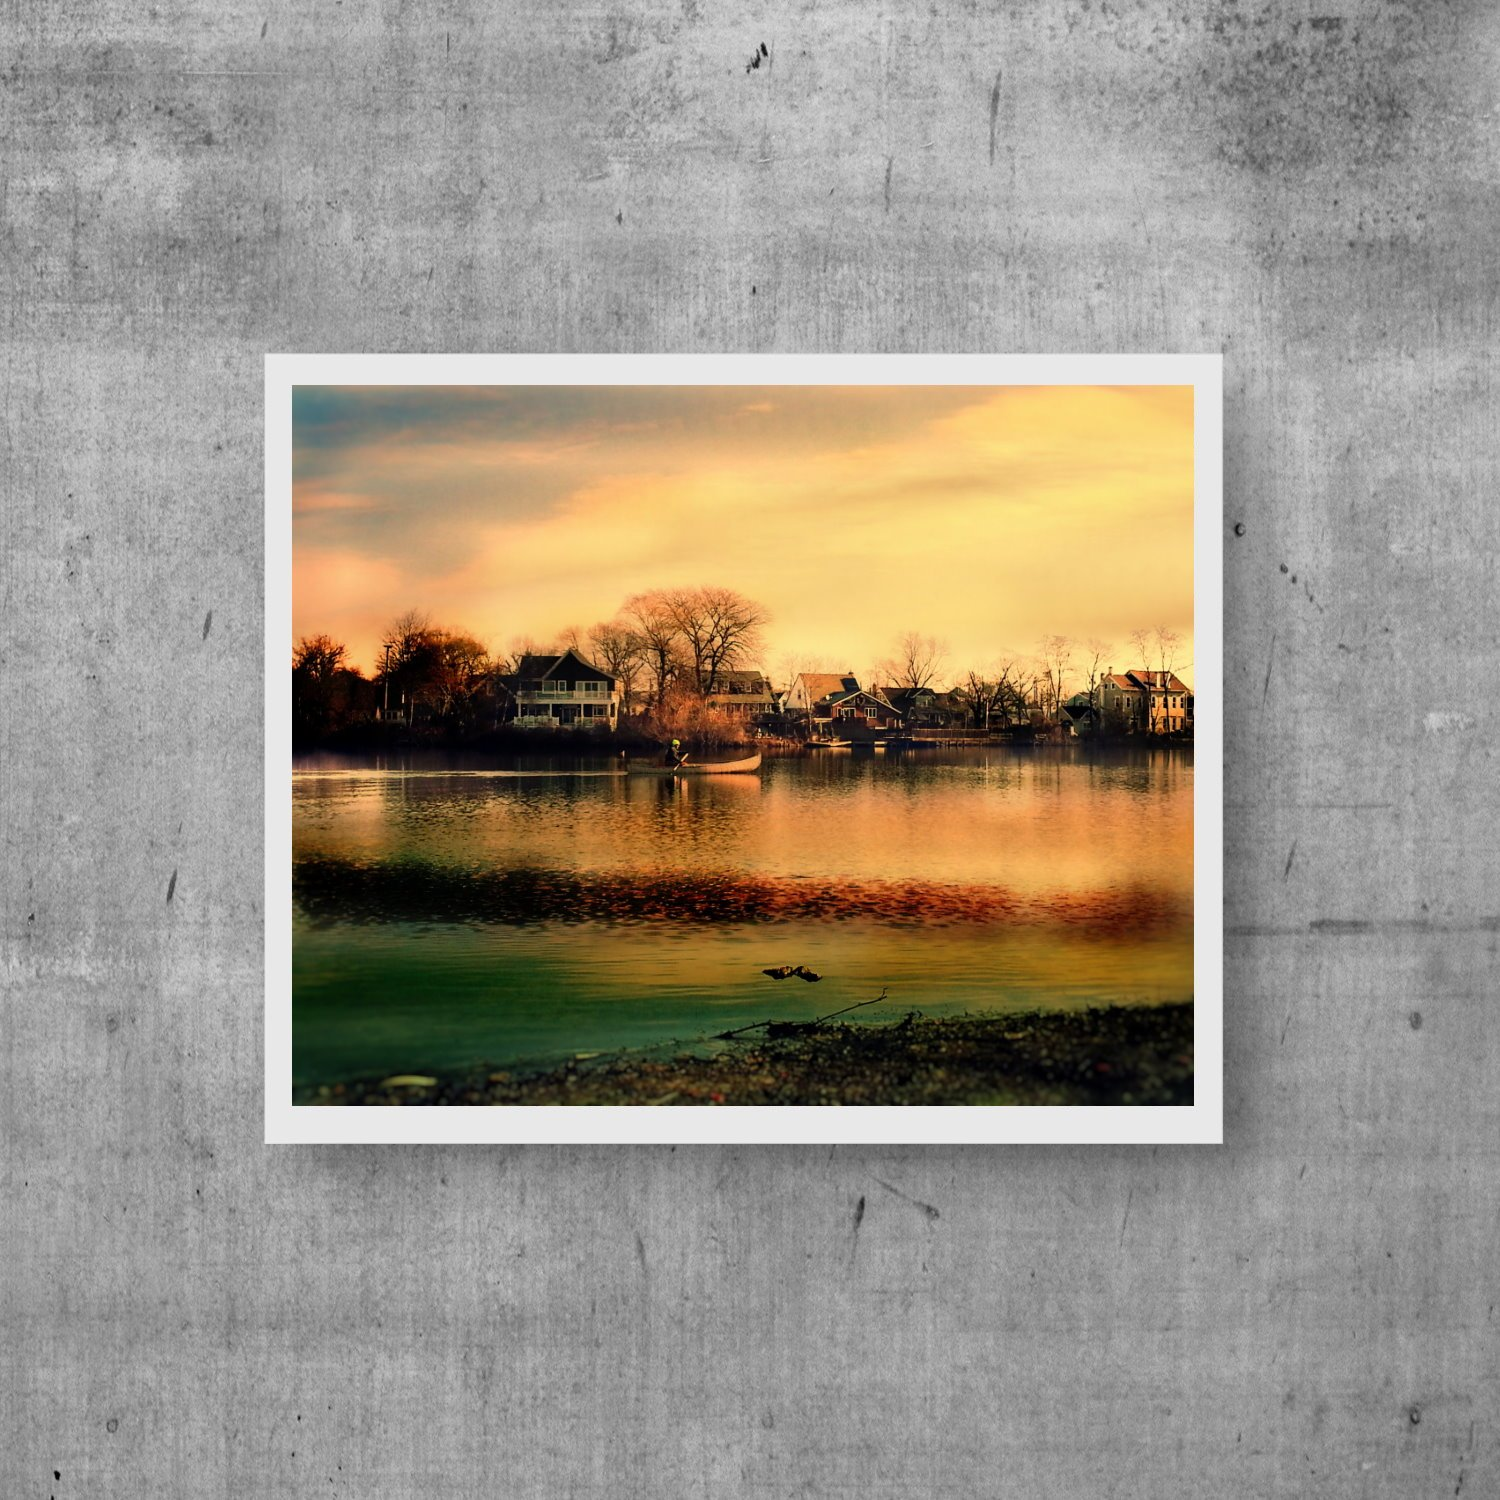 Lake Wall Decor, Artistic Painting Effect, Lake Canoe Digital Photo Print